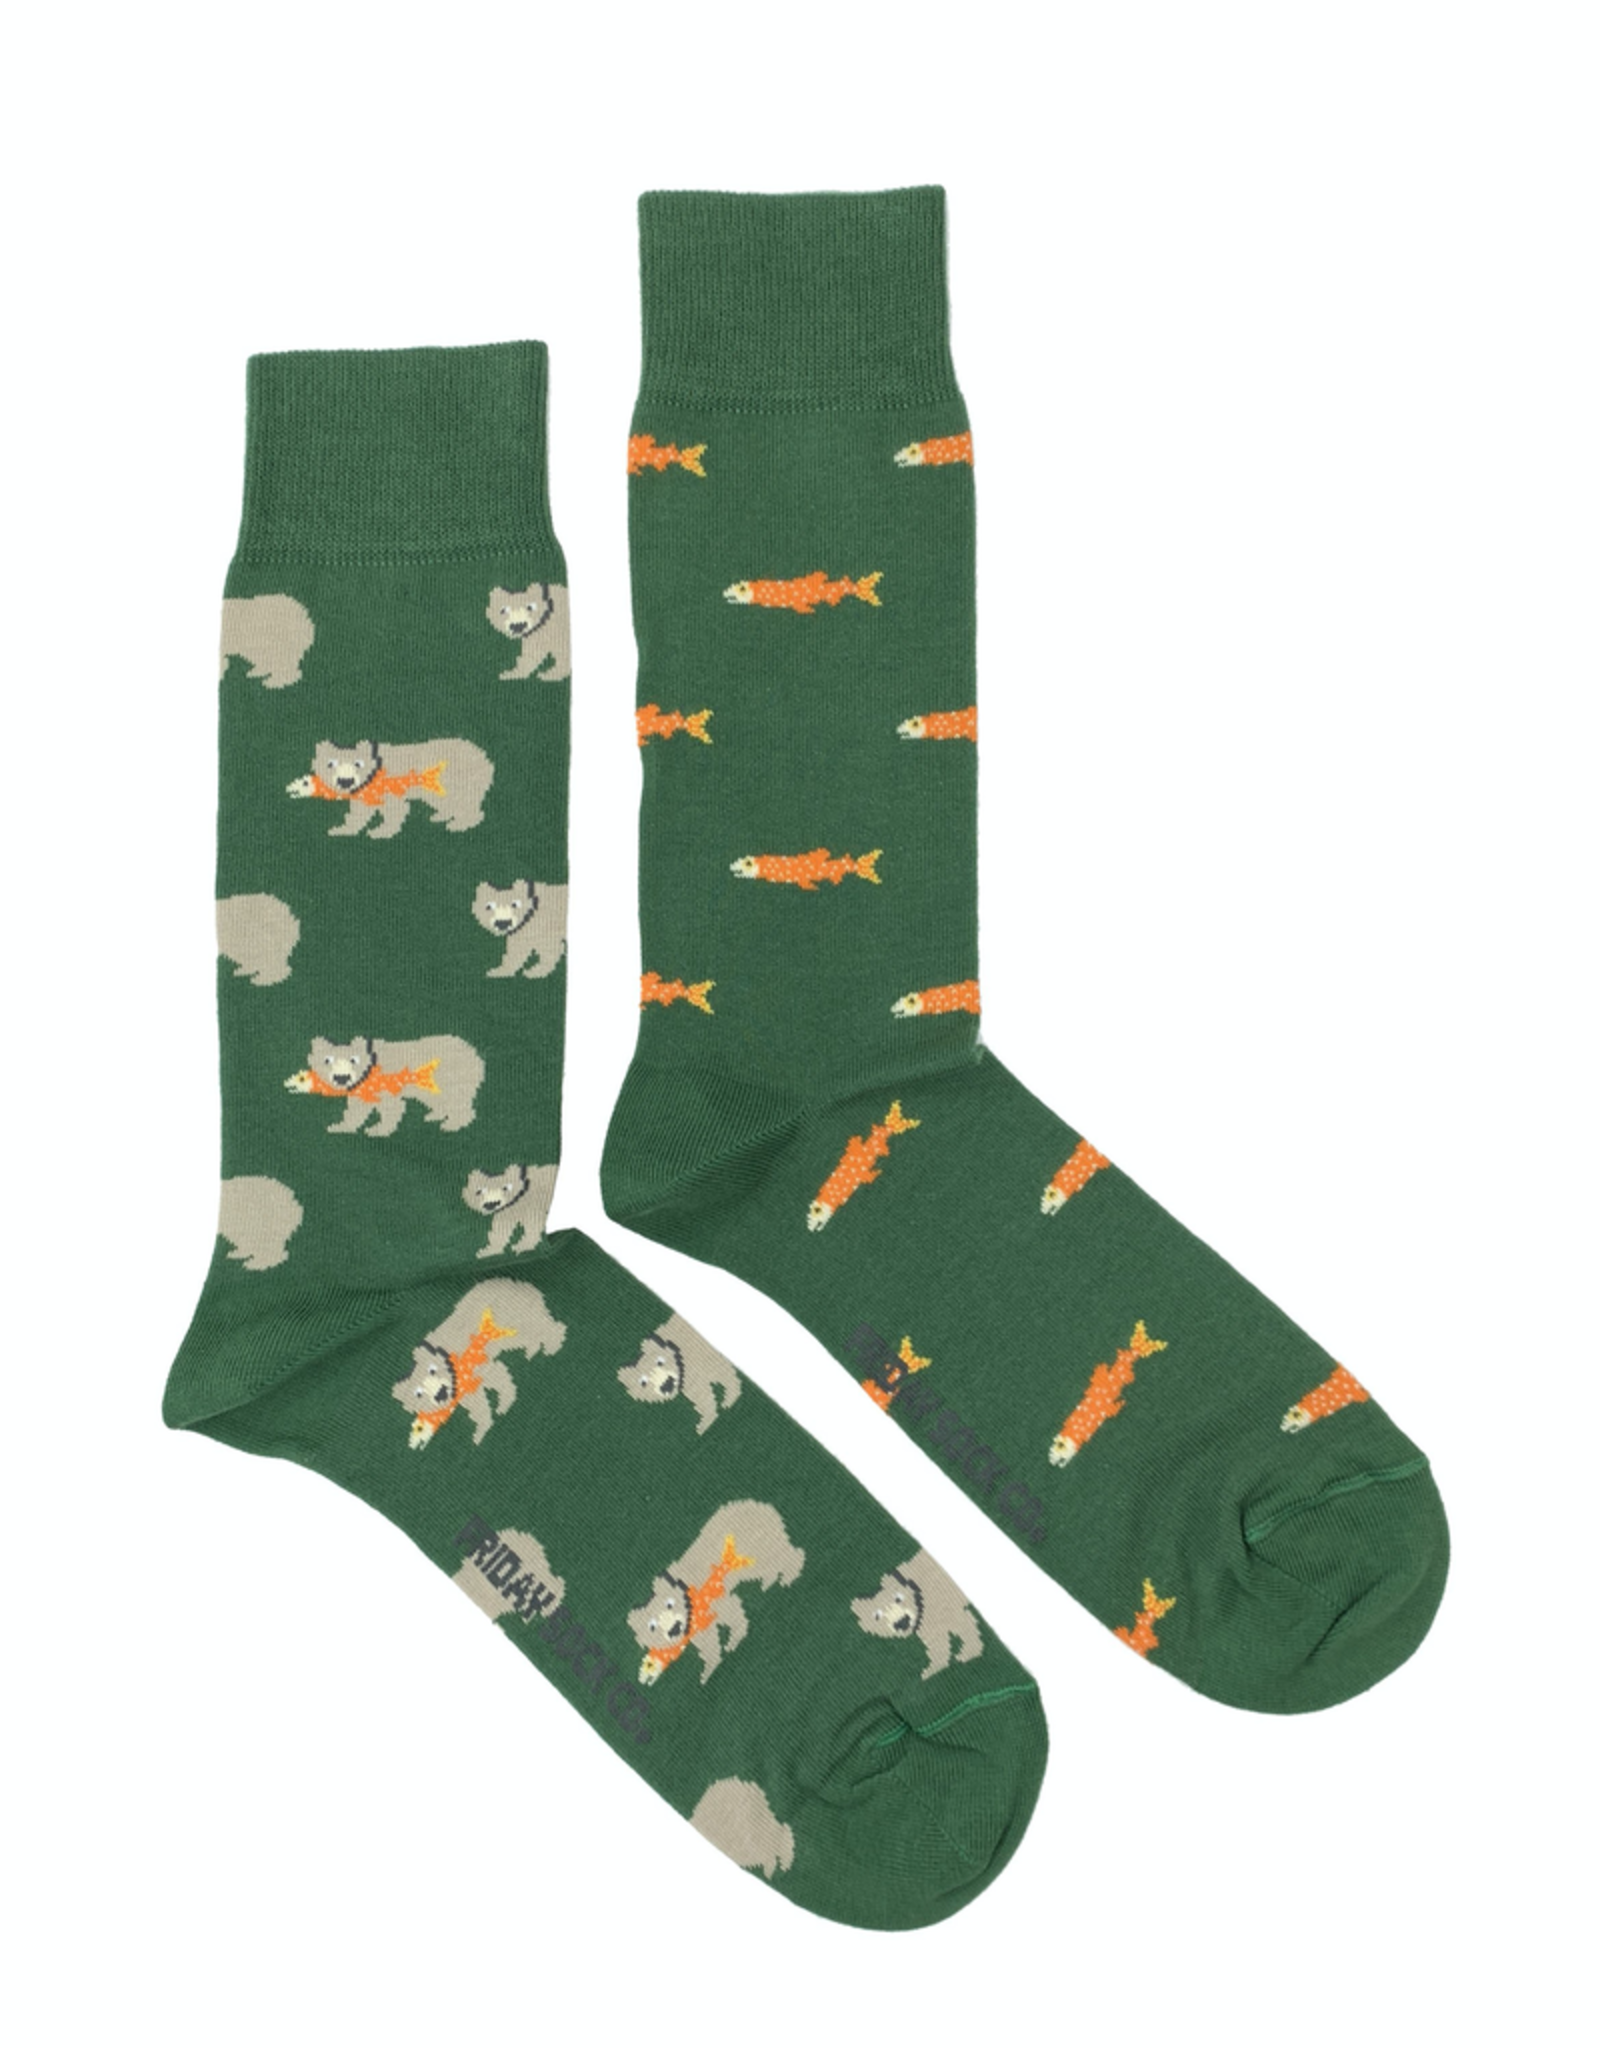 Friday Sock Co Salmon And Grizzly Bear Socks